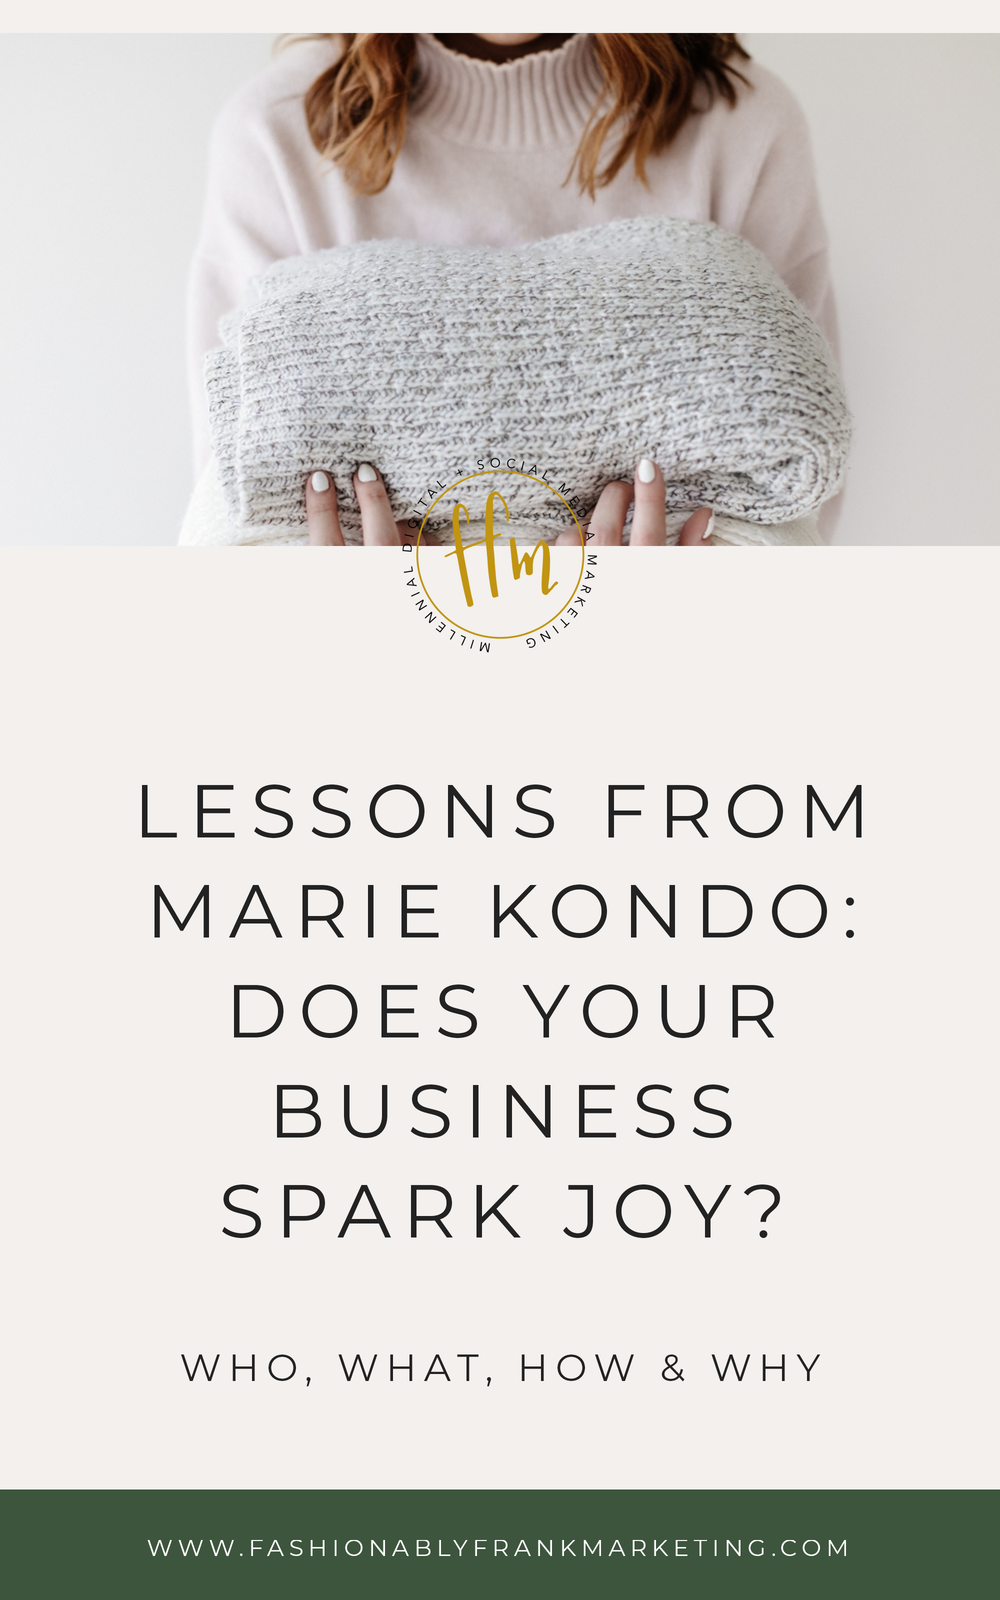 Does Your Business Spark Joy.png